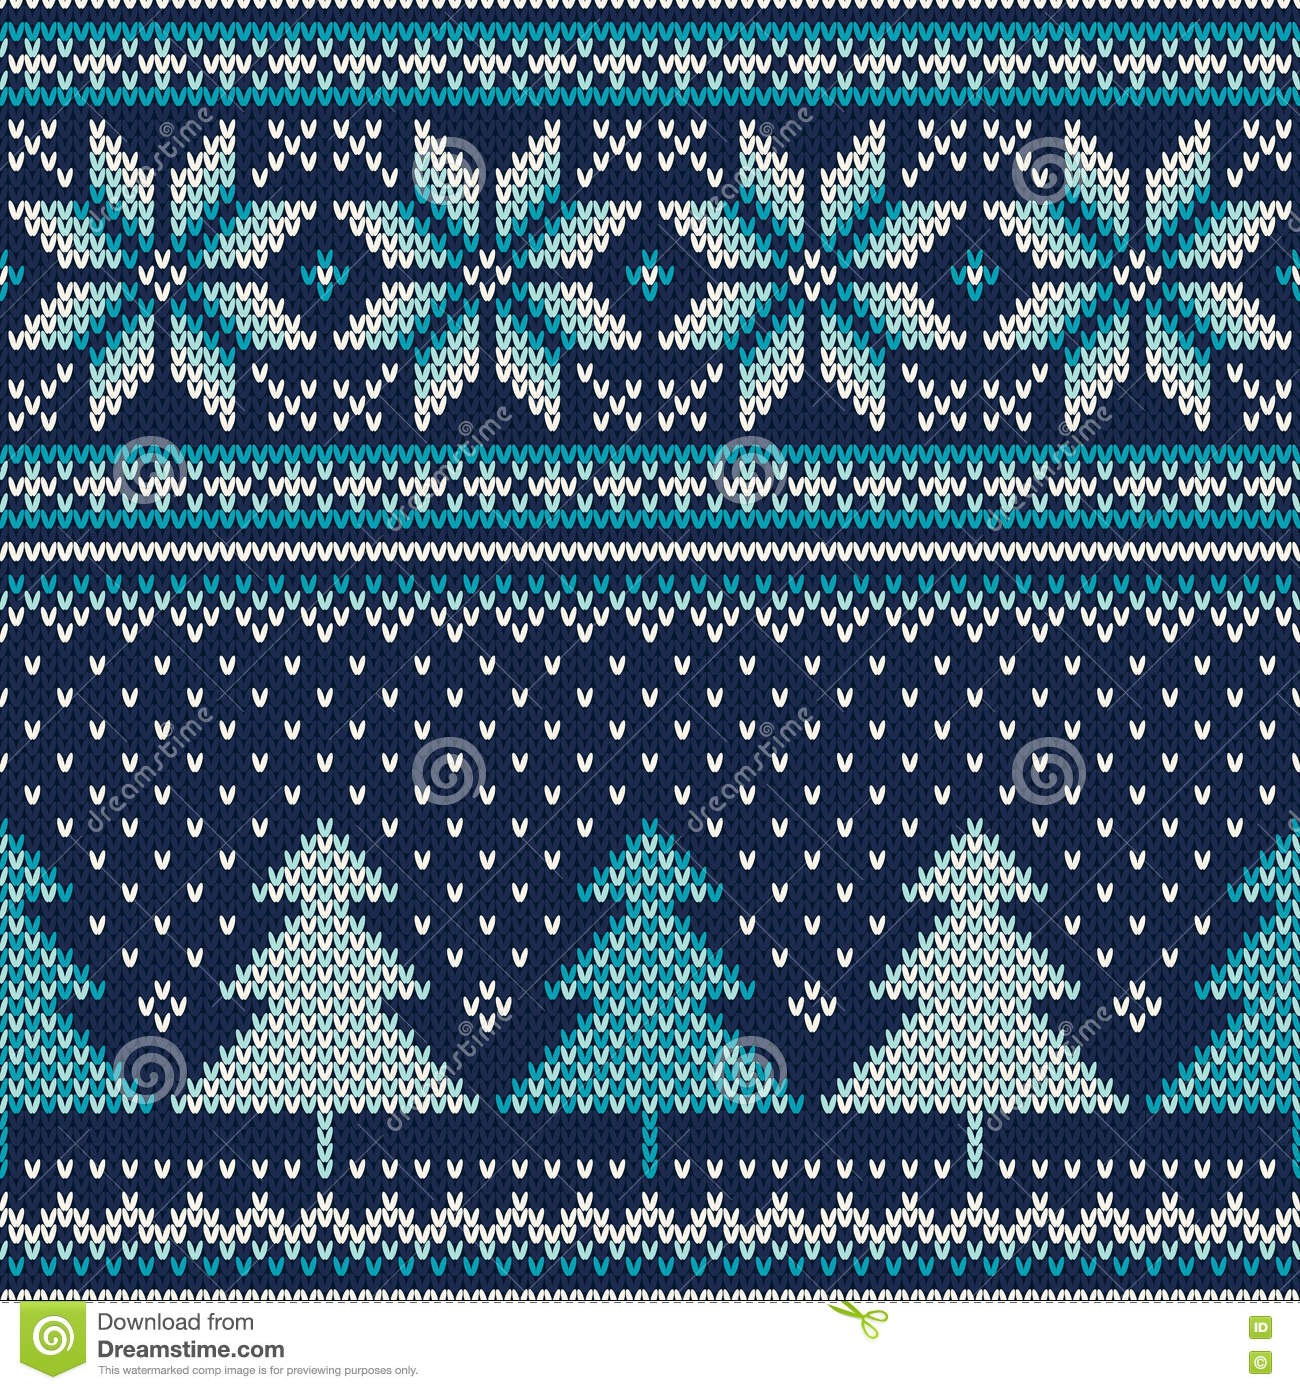 Knit Pattern Christmas Vector : Winter Holiday Seamless Knitting Pattern With A Christmas Tree. Vector Knitte...